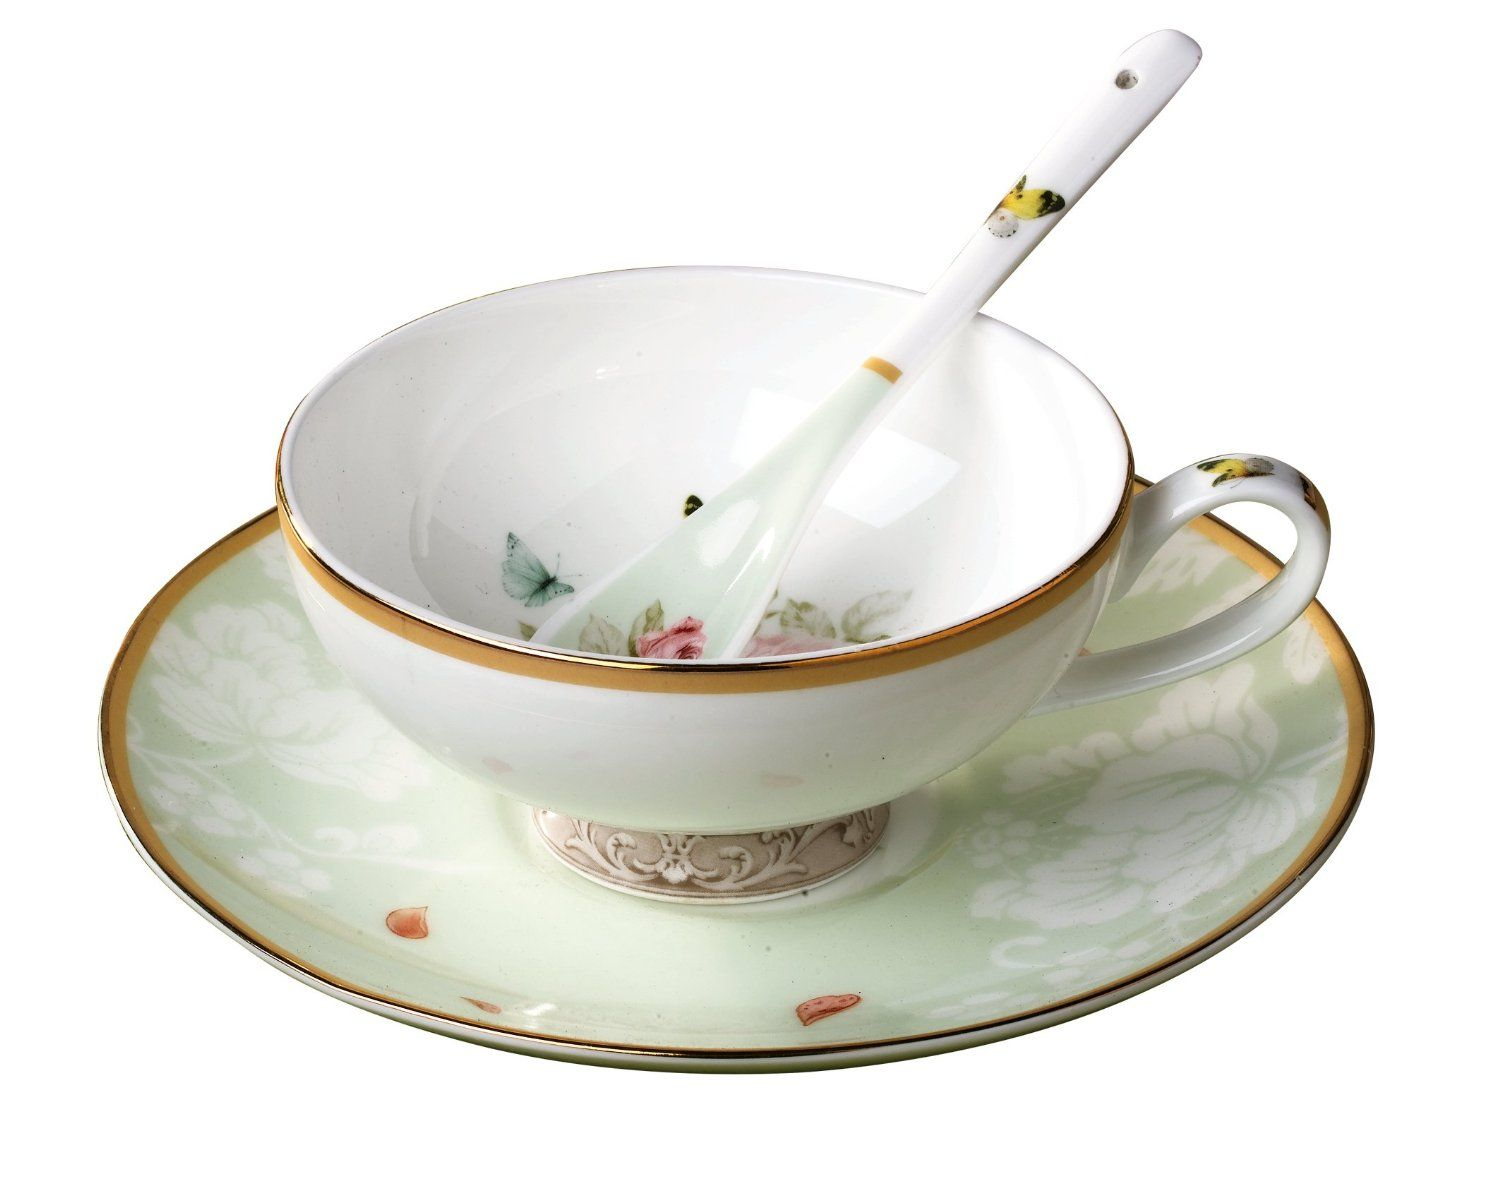 Jsaron Porcelain Vintage Tea Coffee Cup With Spoon And Saucer Set